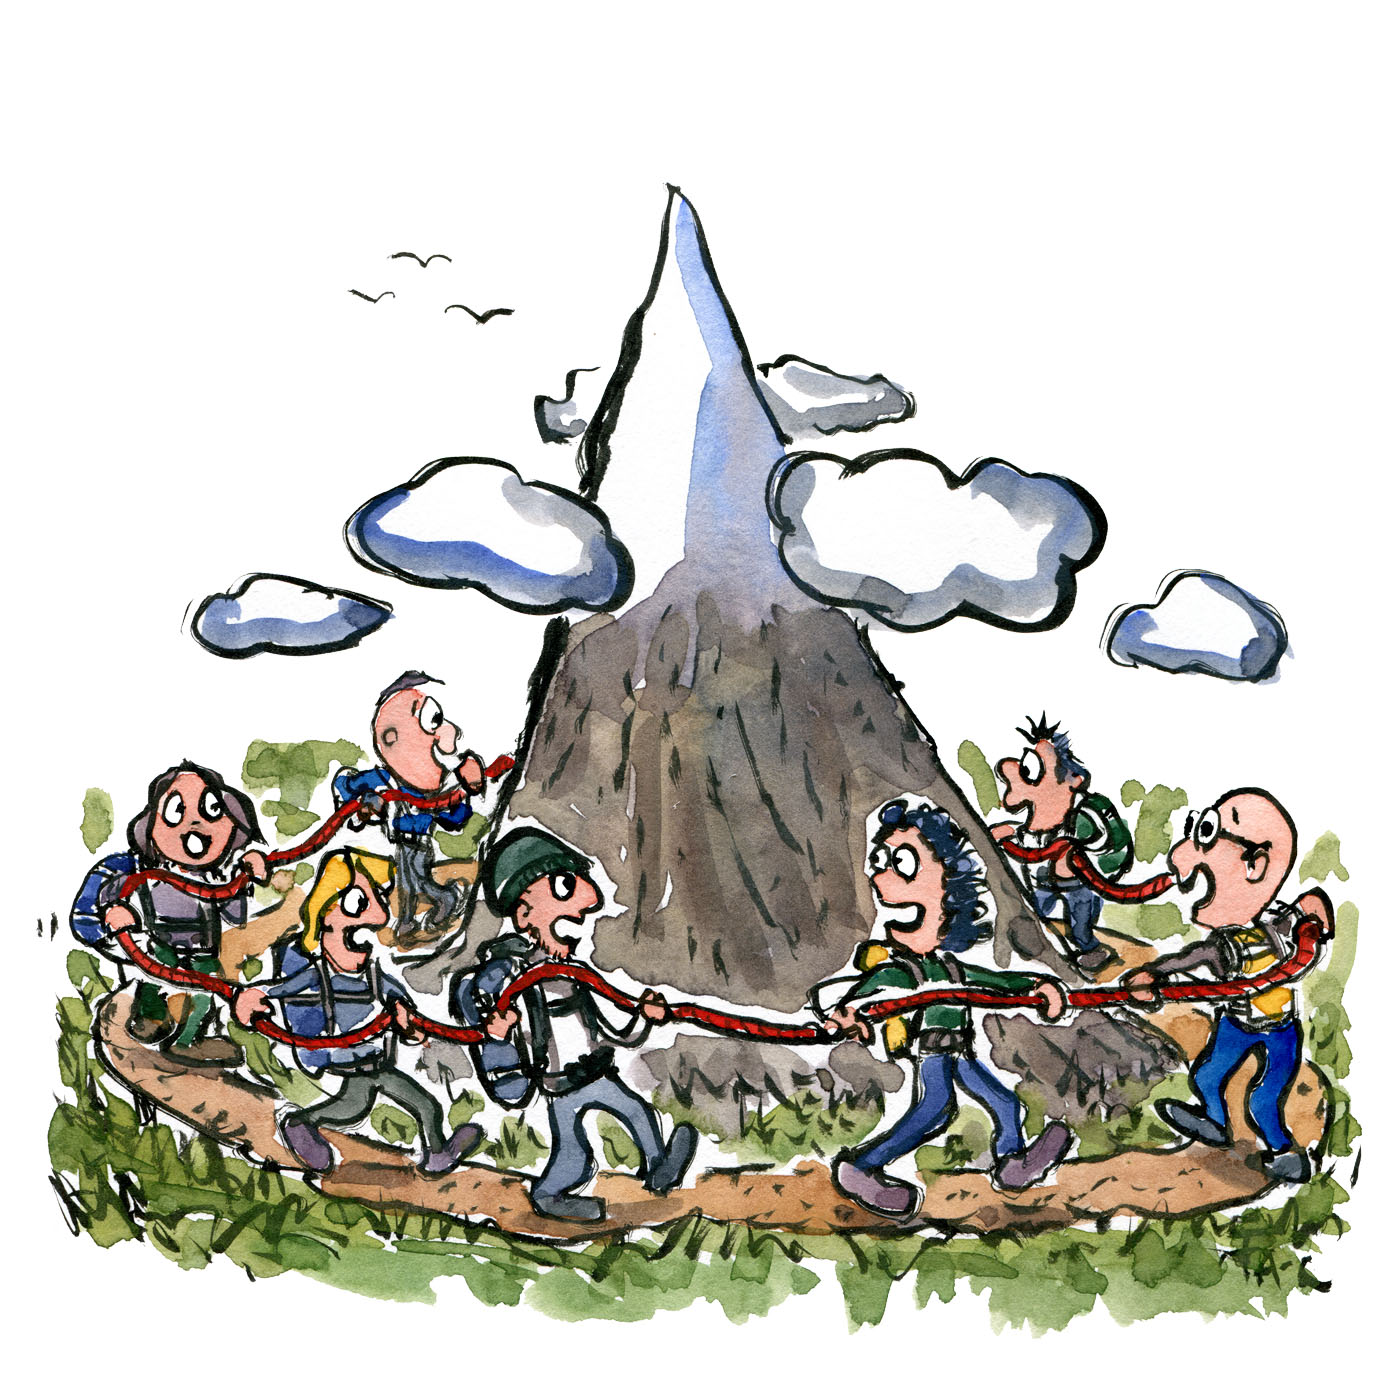 Group of hikers walking around Mountain - illustration by Frits Ahlefeldt